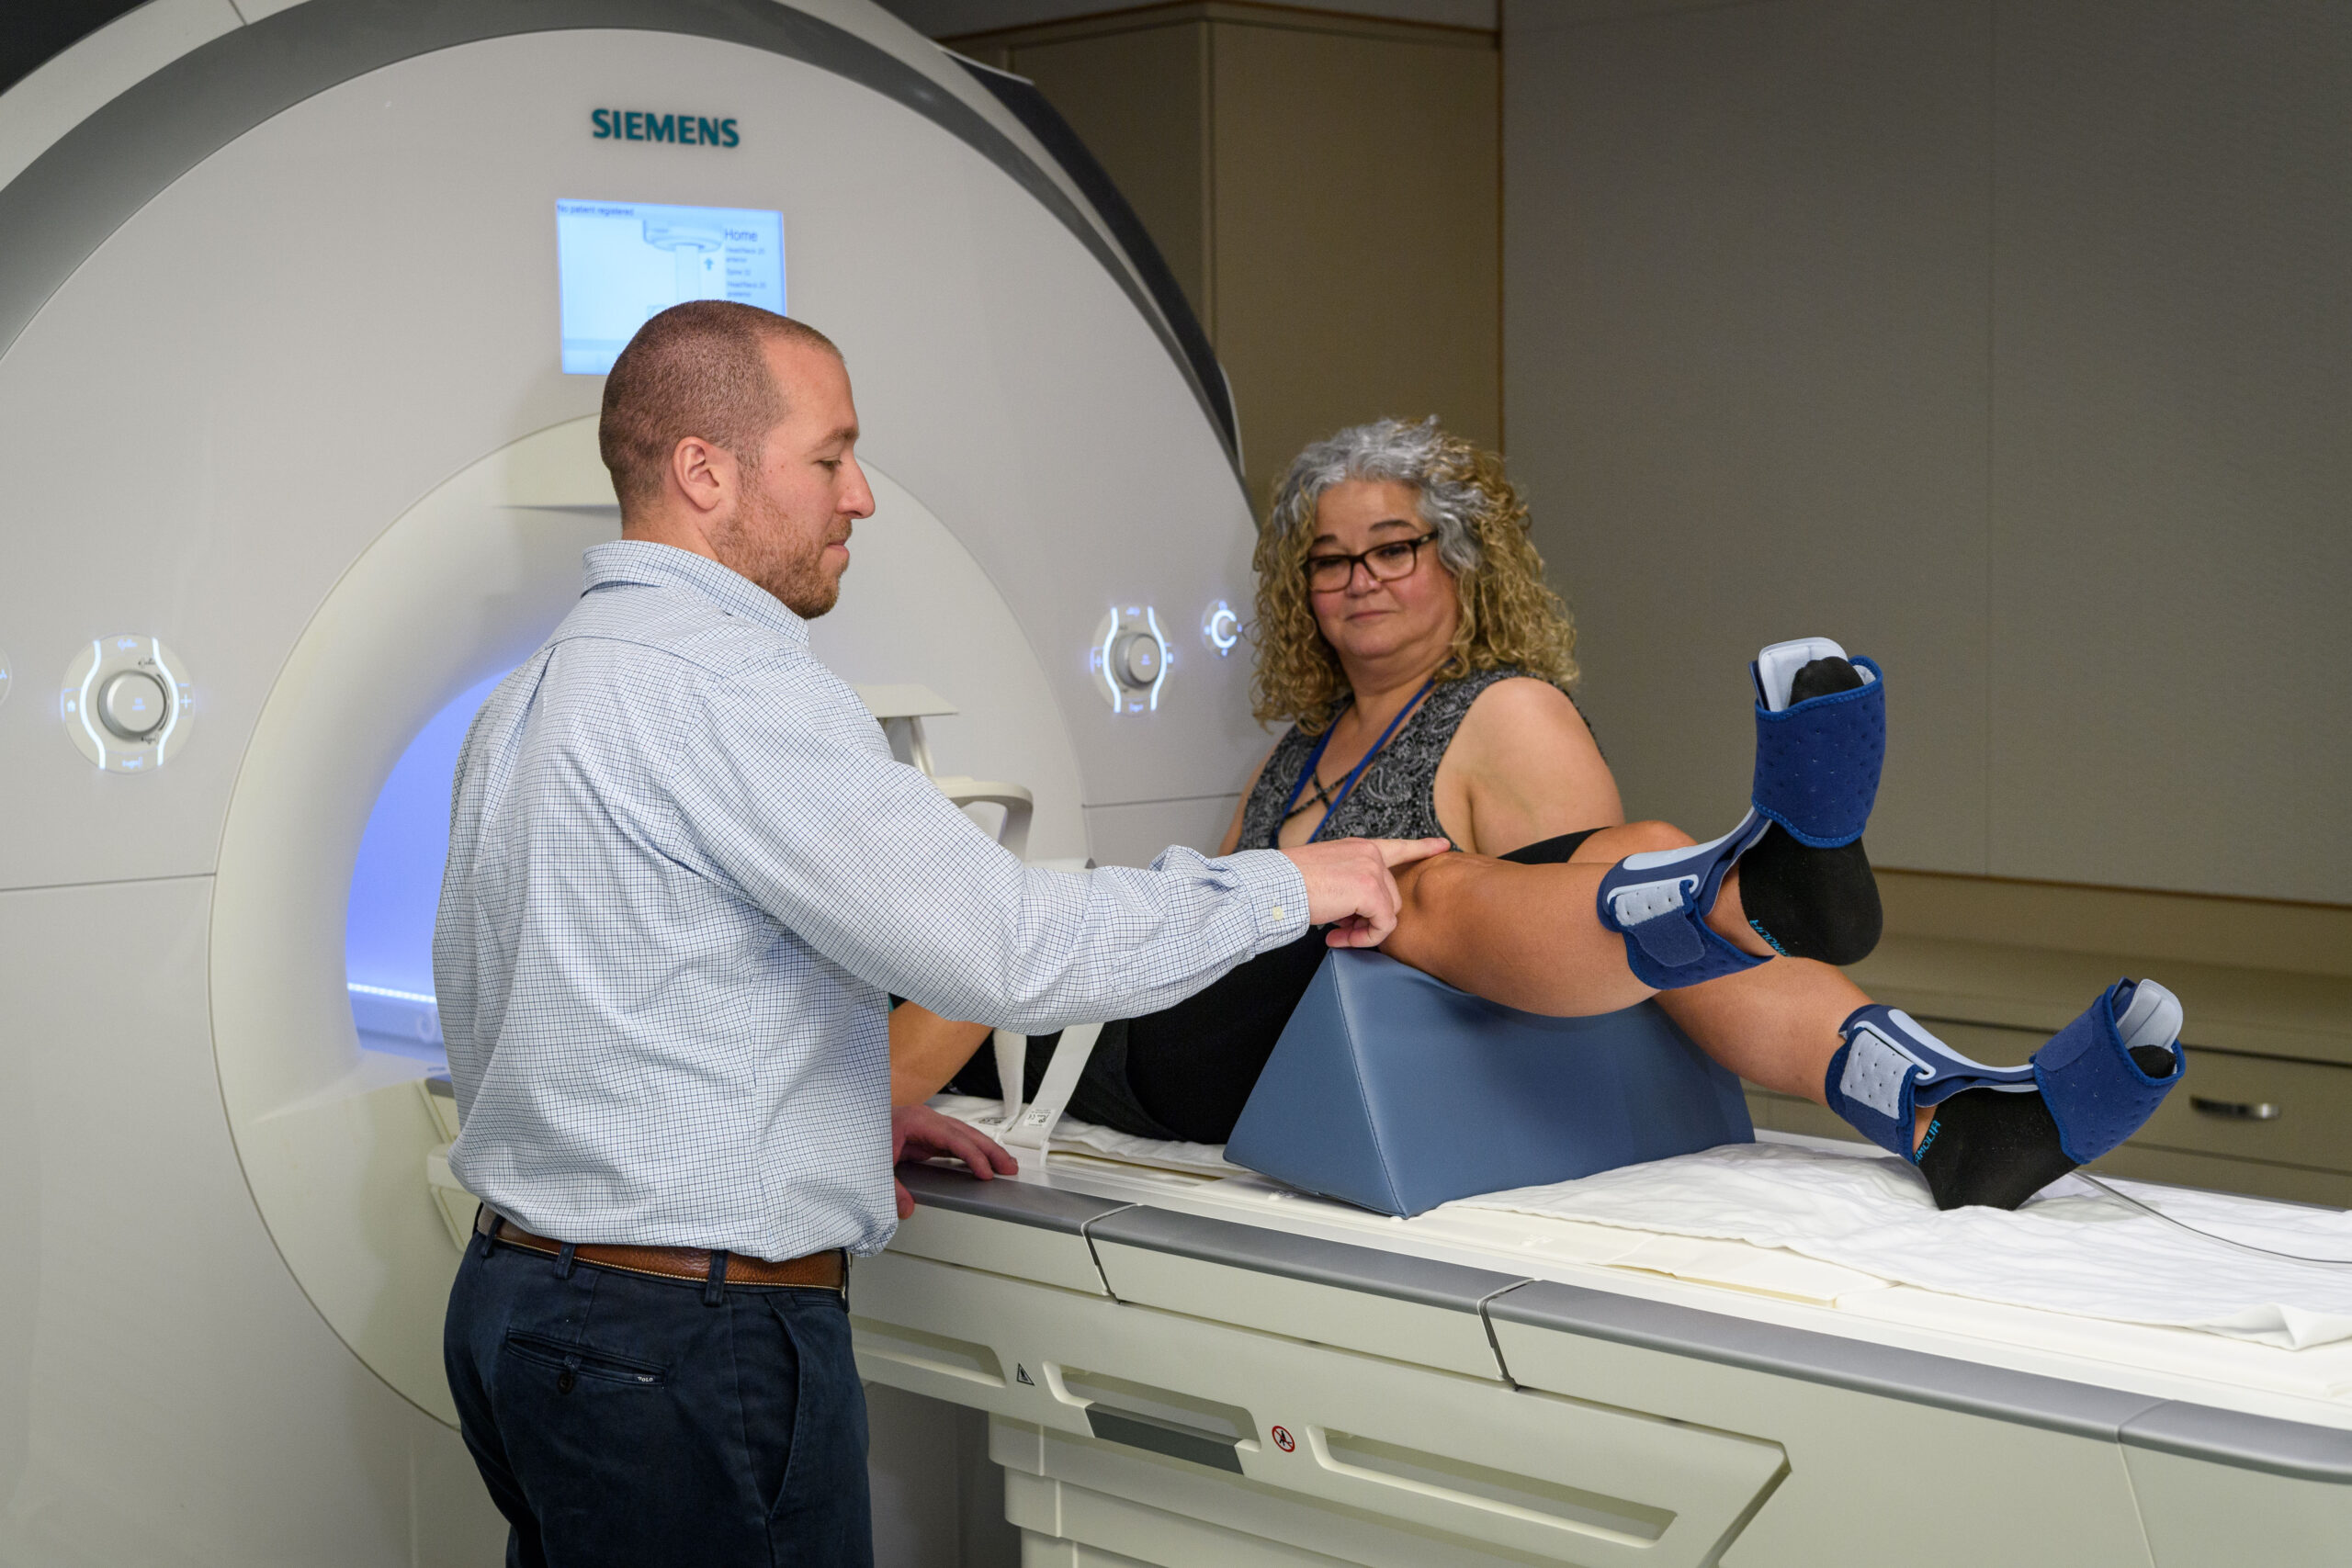 Lepley points to the knee of the patient laying on the MRI examination table, while Medeiros looks on from the other side of the table , while